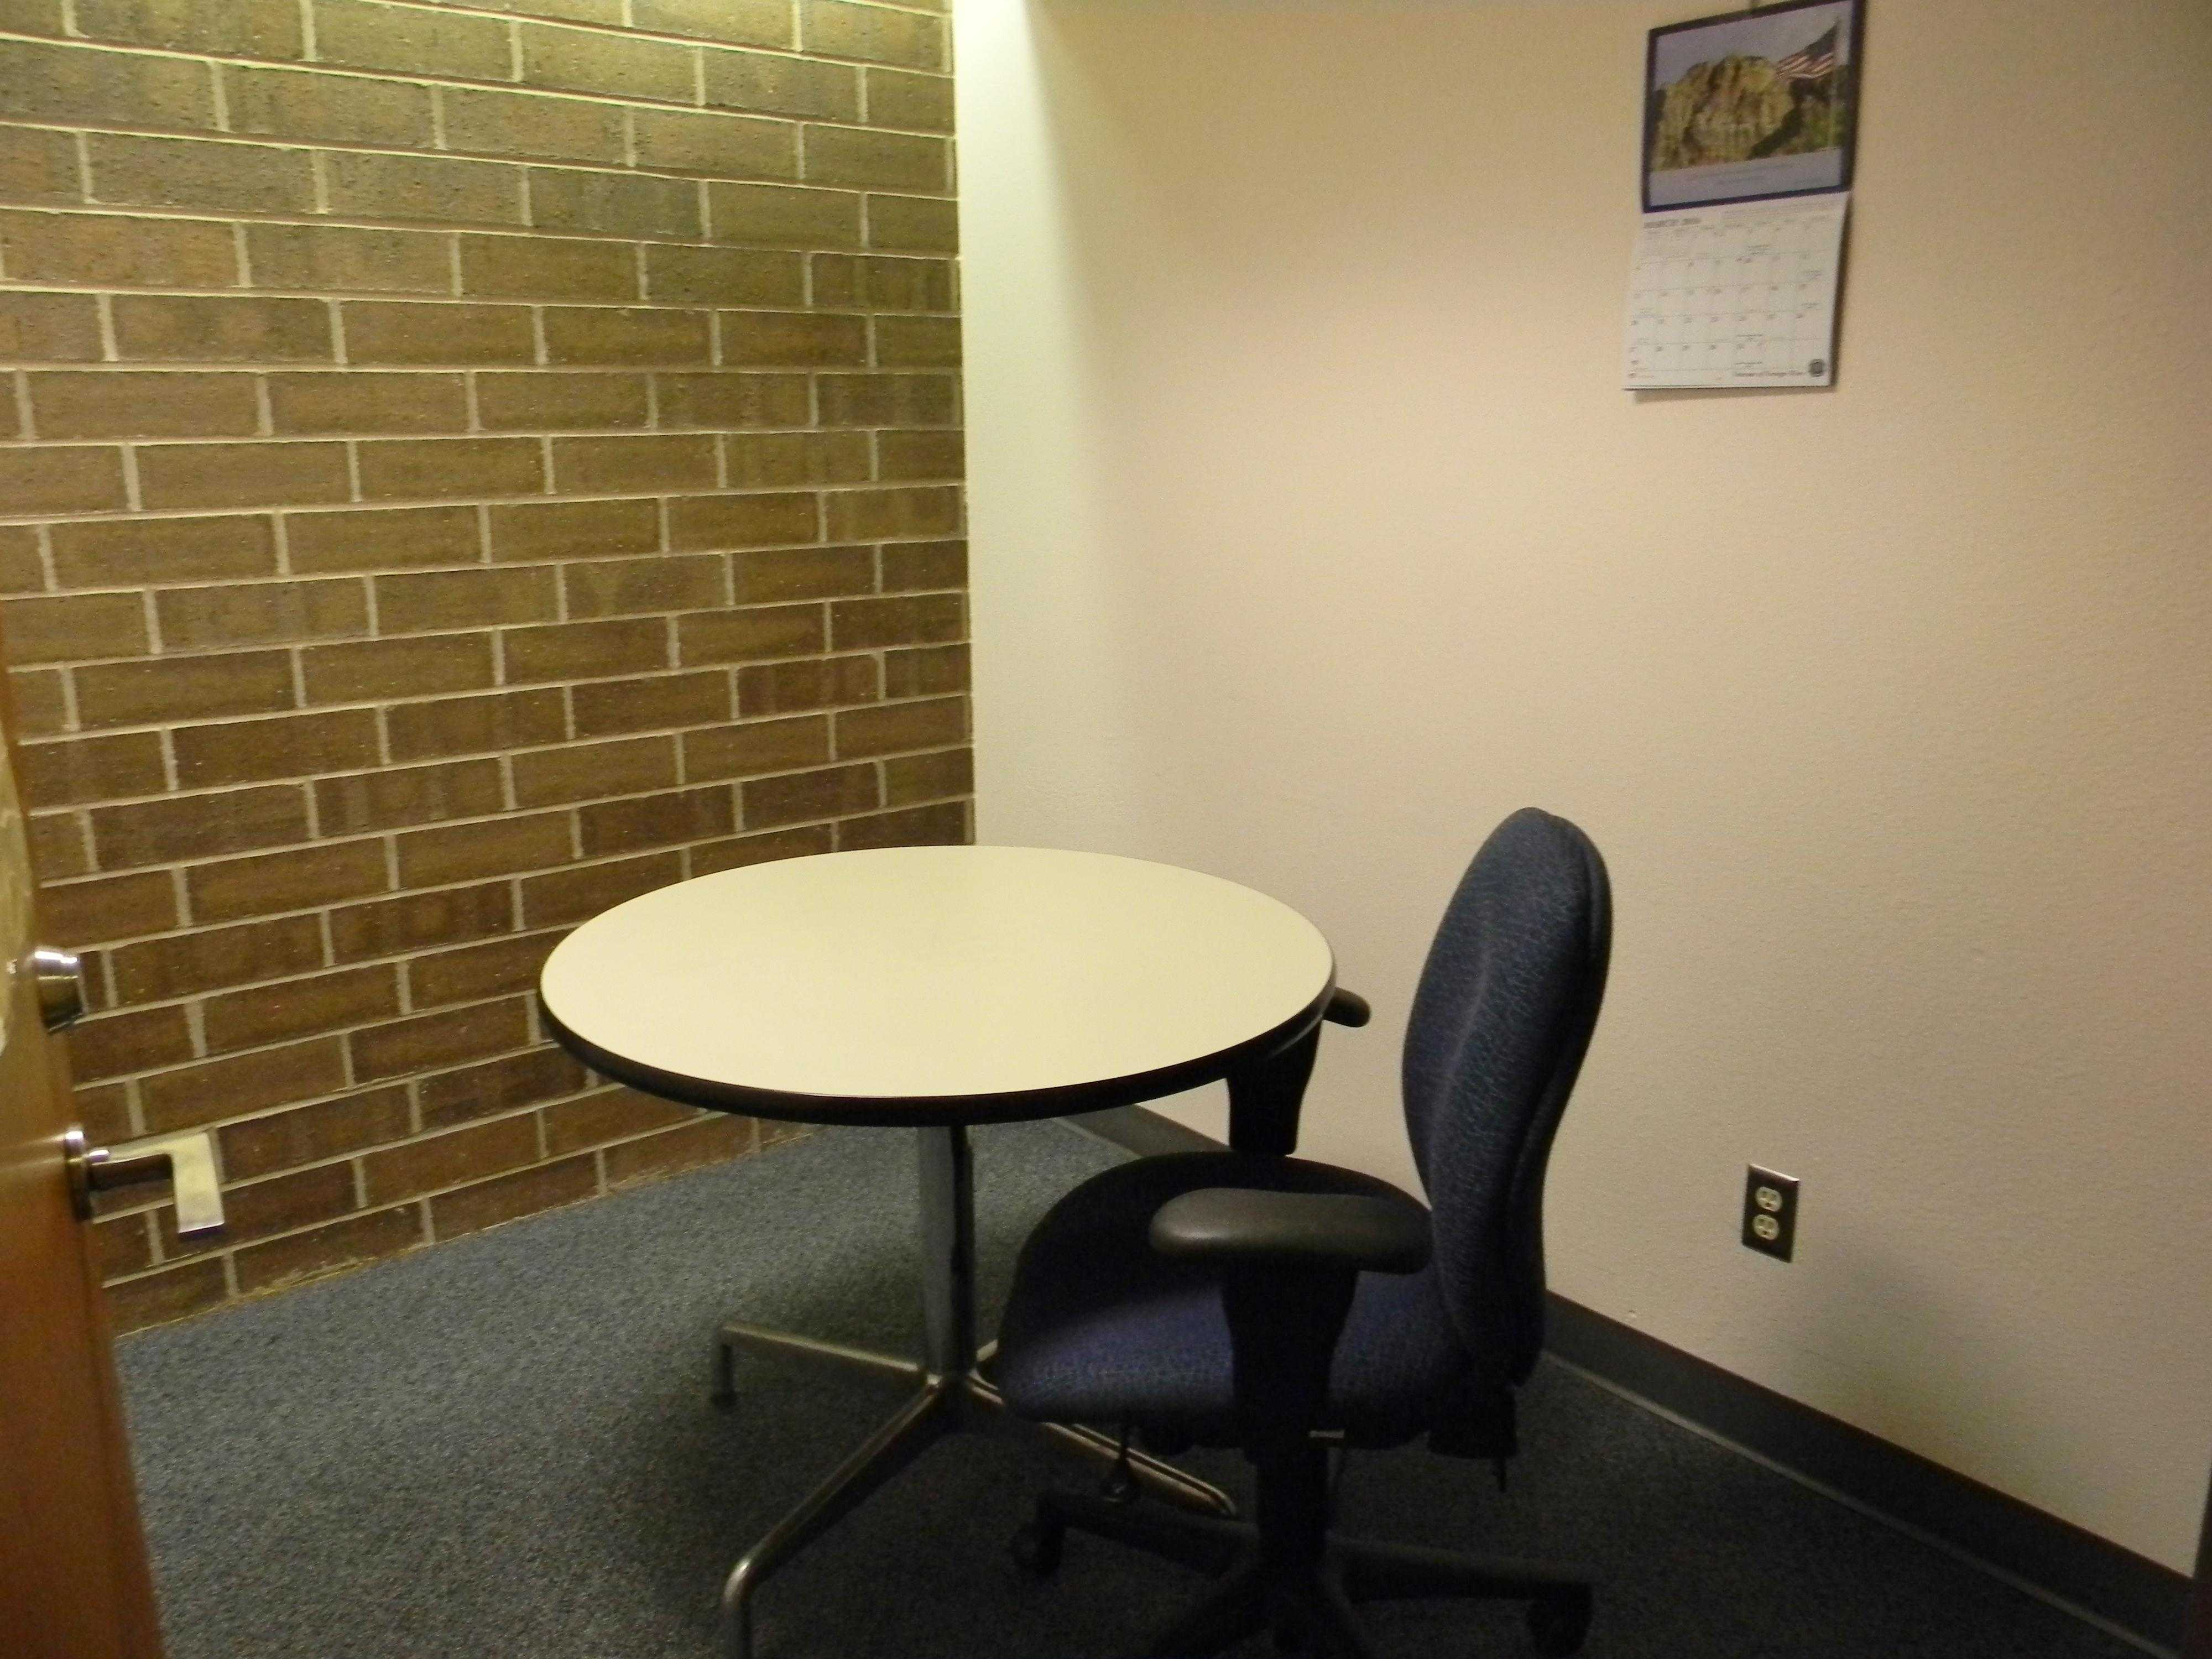 portage county health and human services nursing mothers lactation room pic1